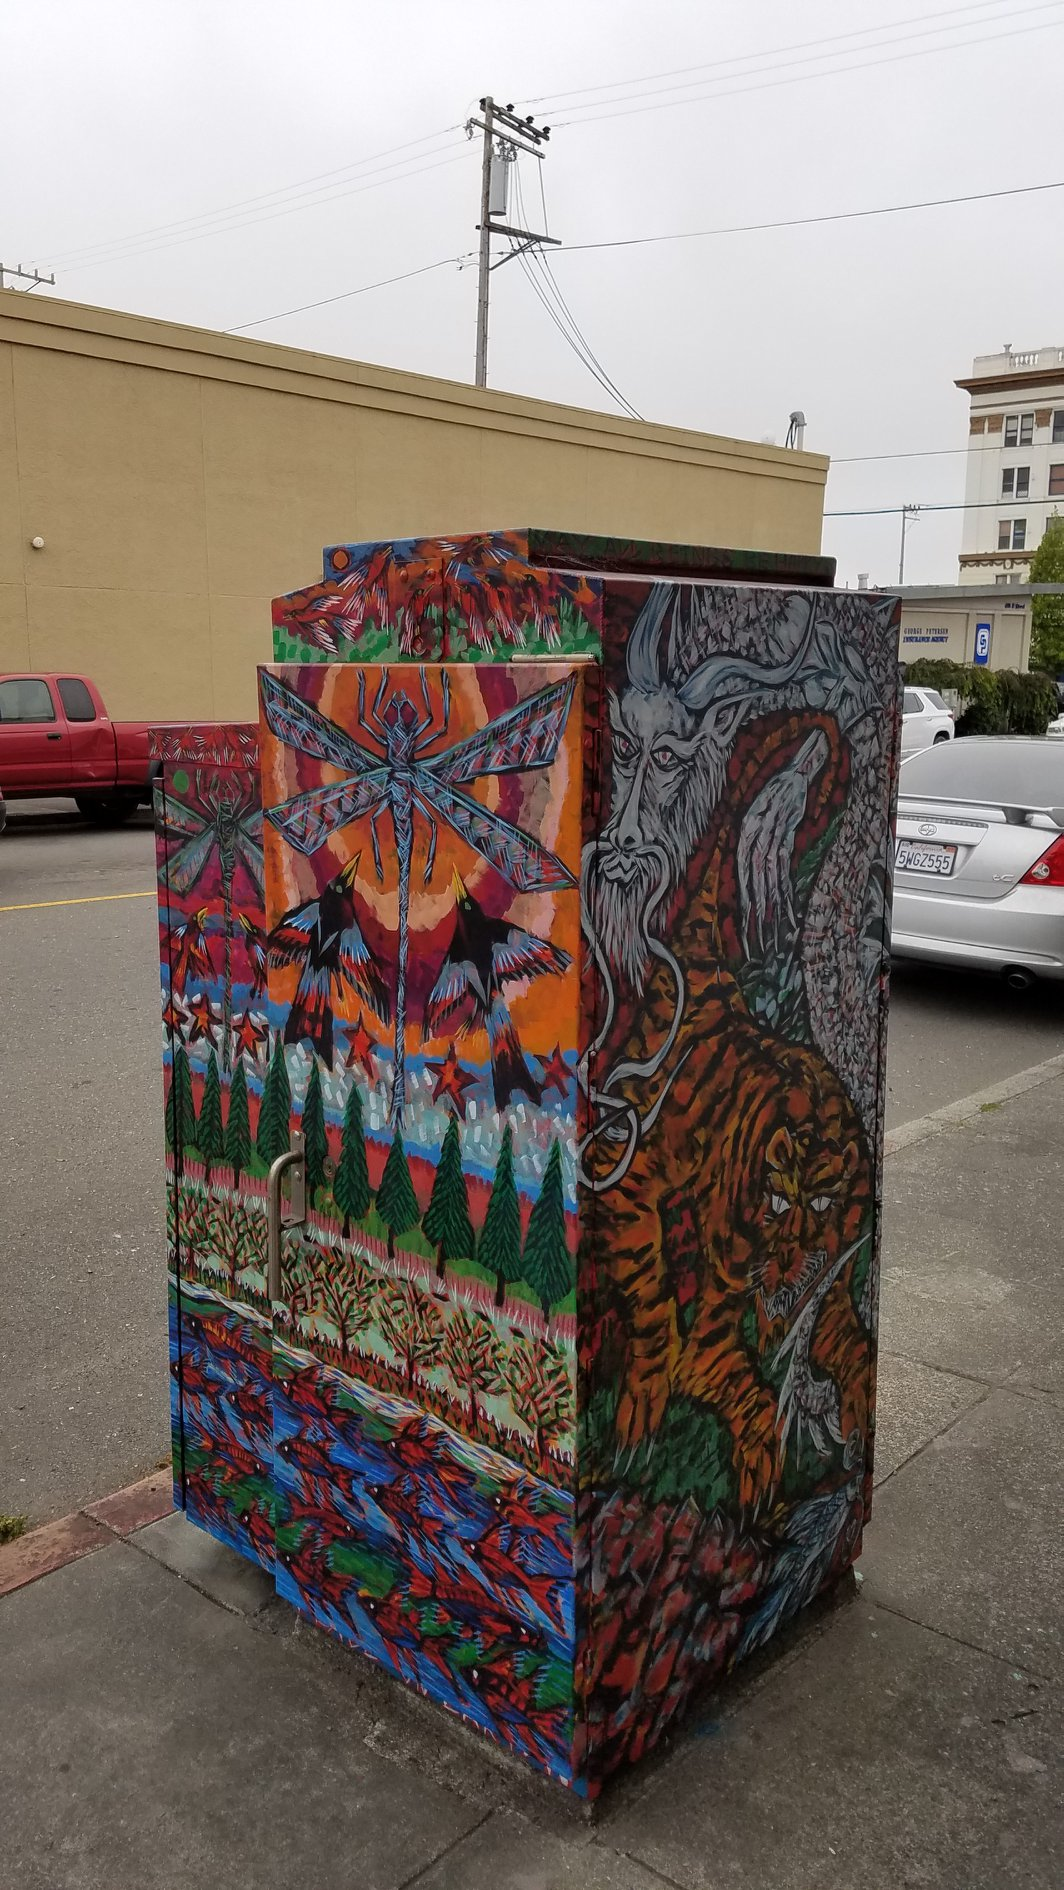 City of Eureka Utility Box Art